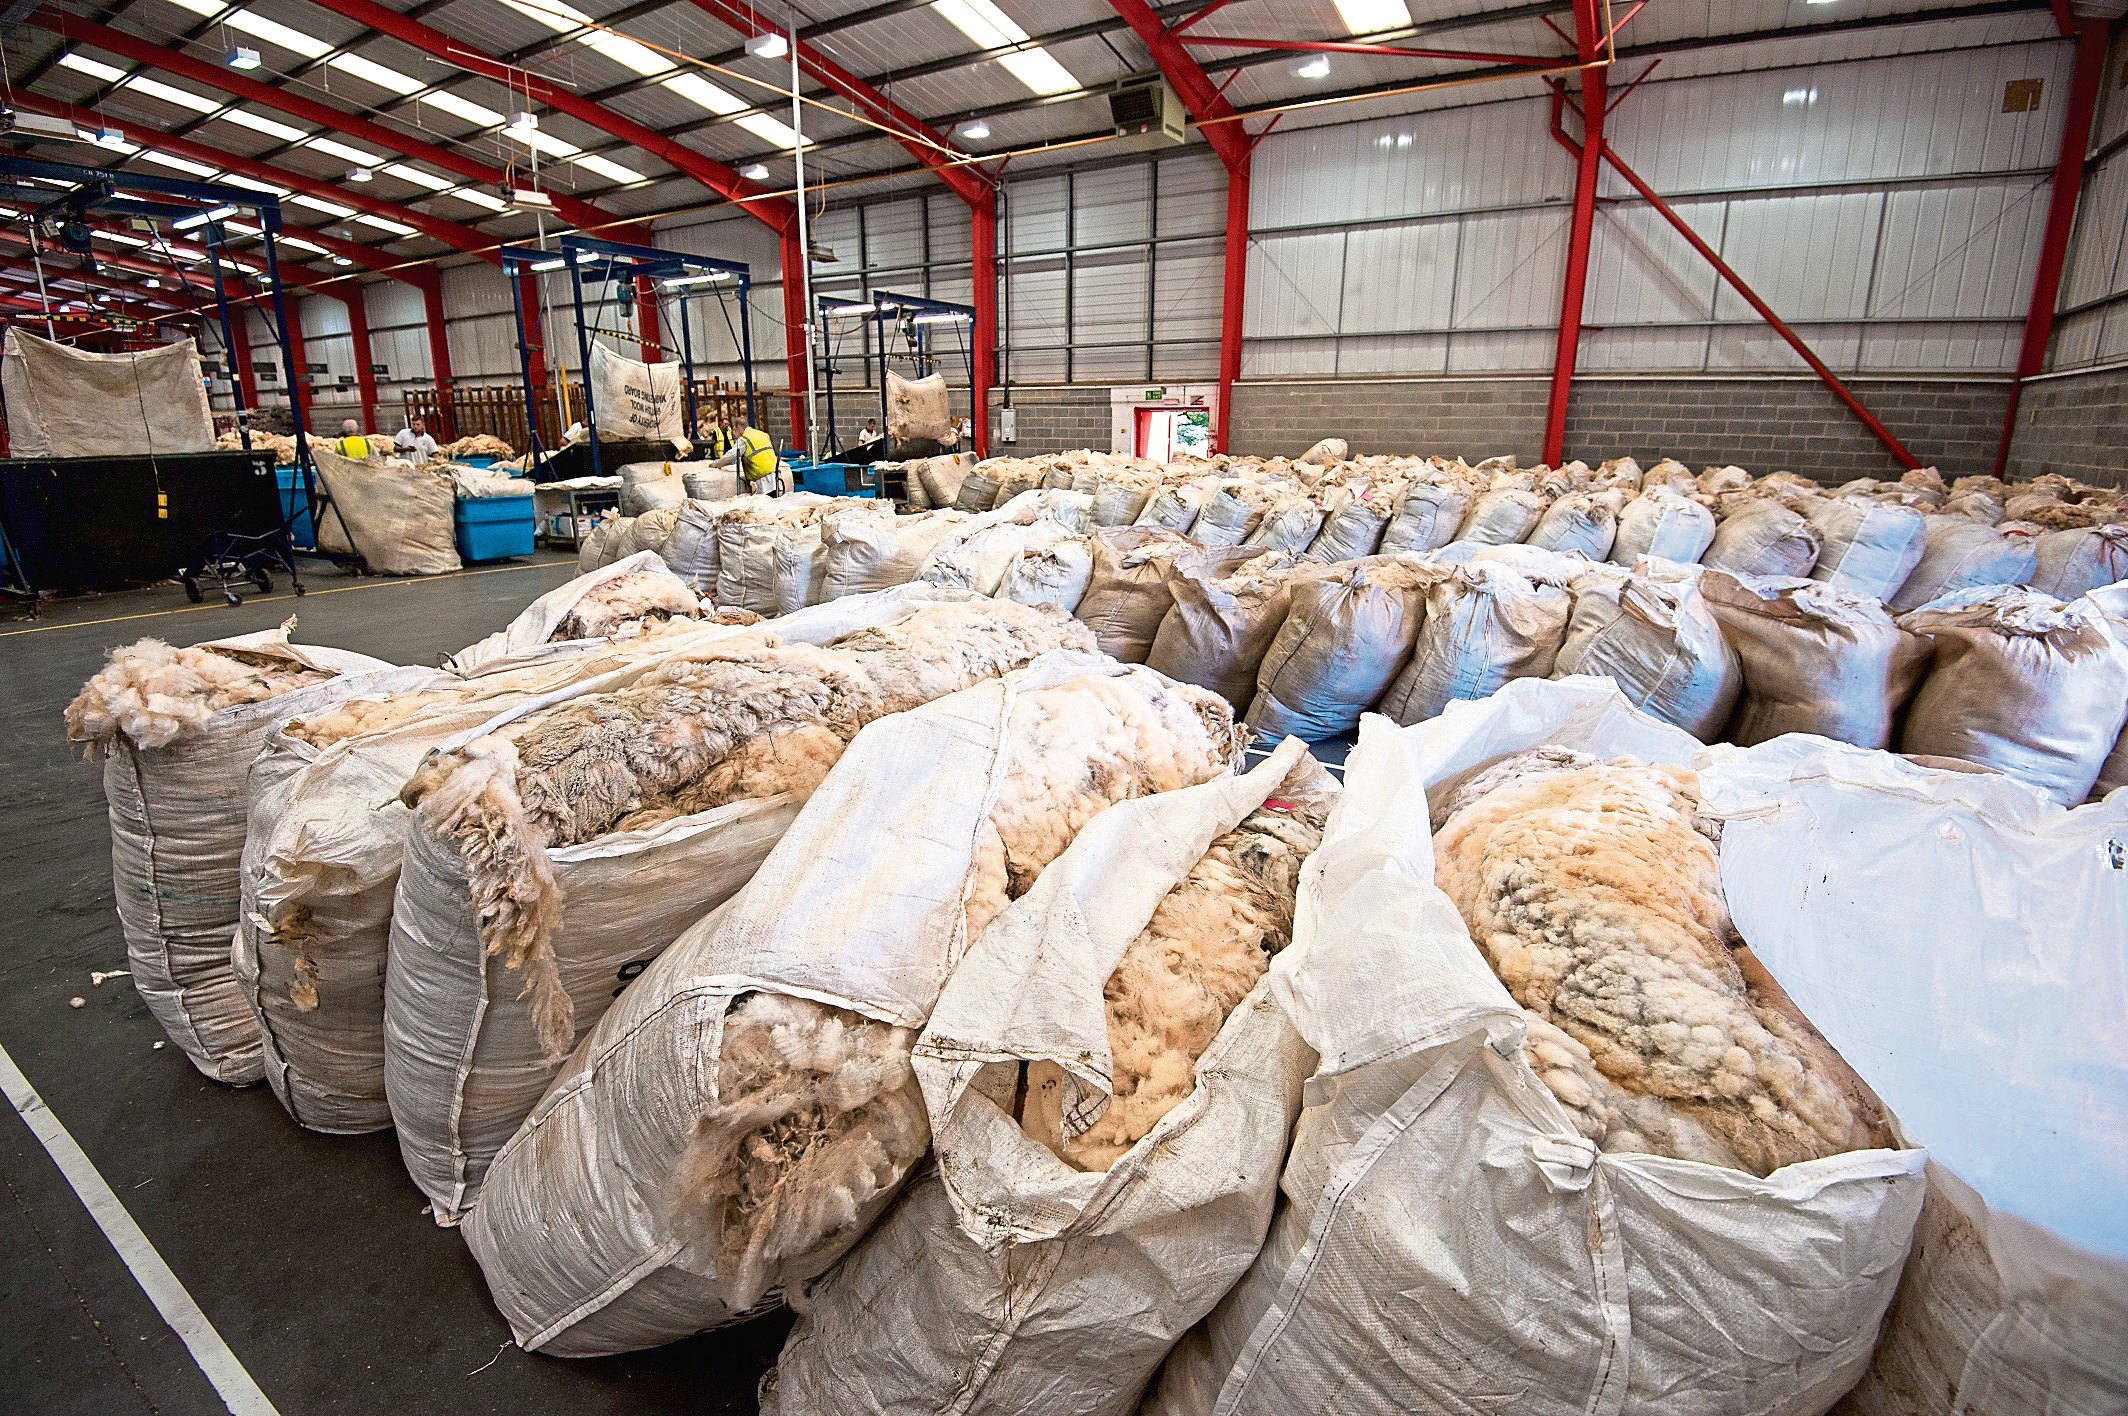 British Wool's depots and collections sites are ready to start receiving wool, and Covid-19 safety protocols are in place.